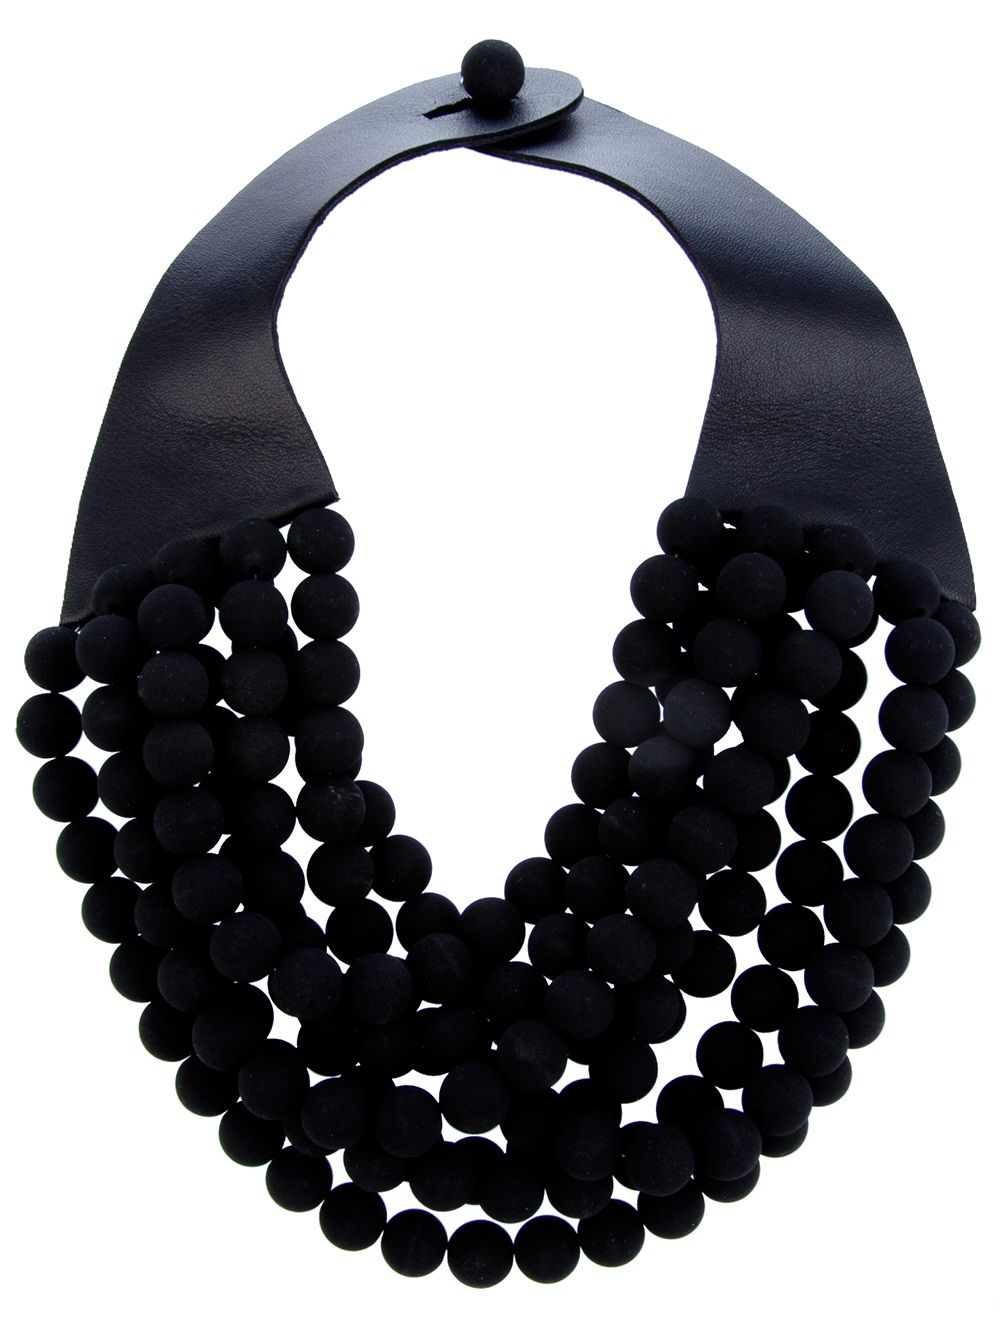 bicycle inner tube Necklace of rubber rounds with red beads K-11